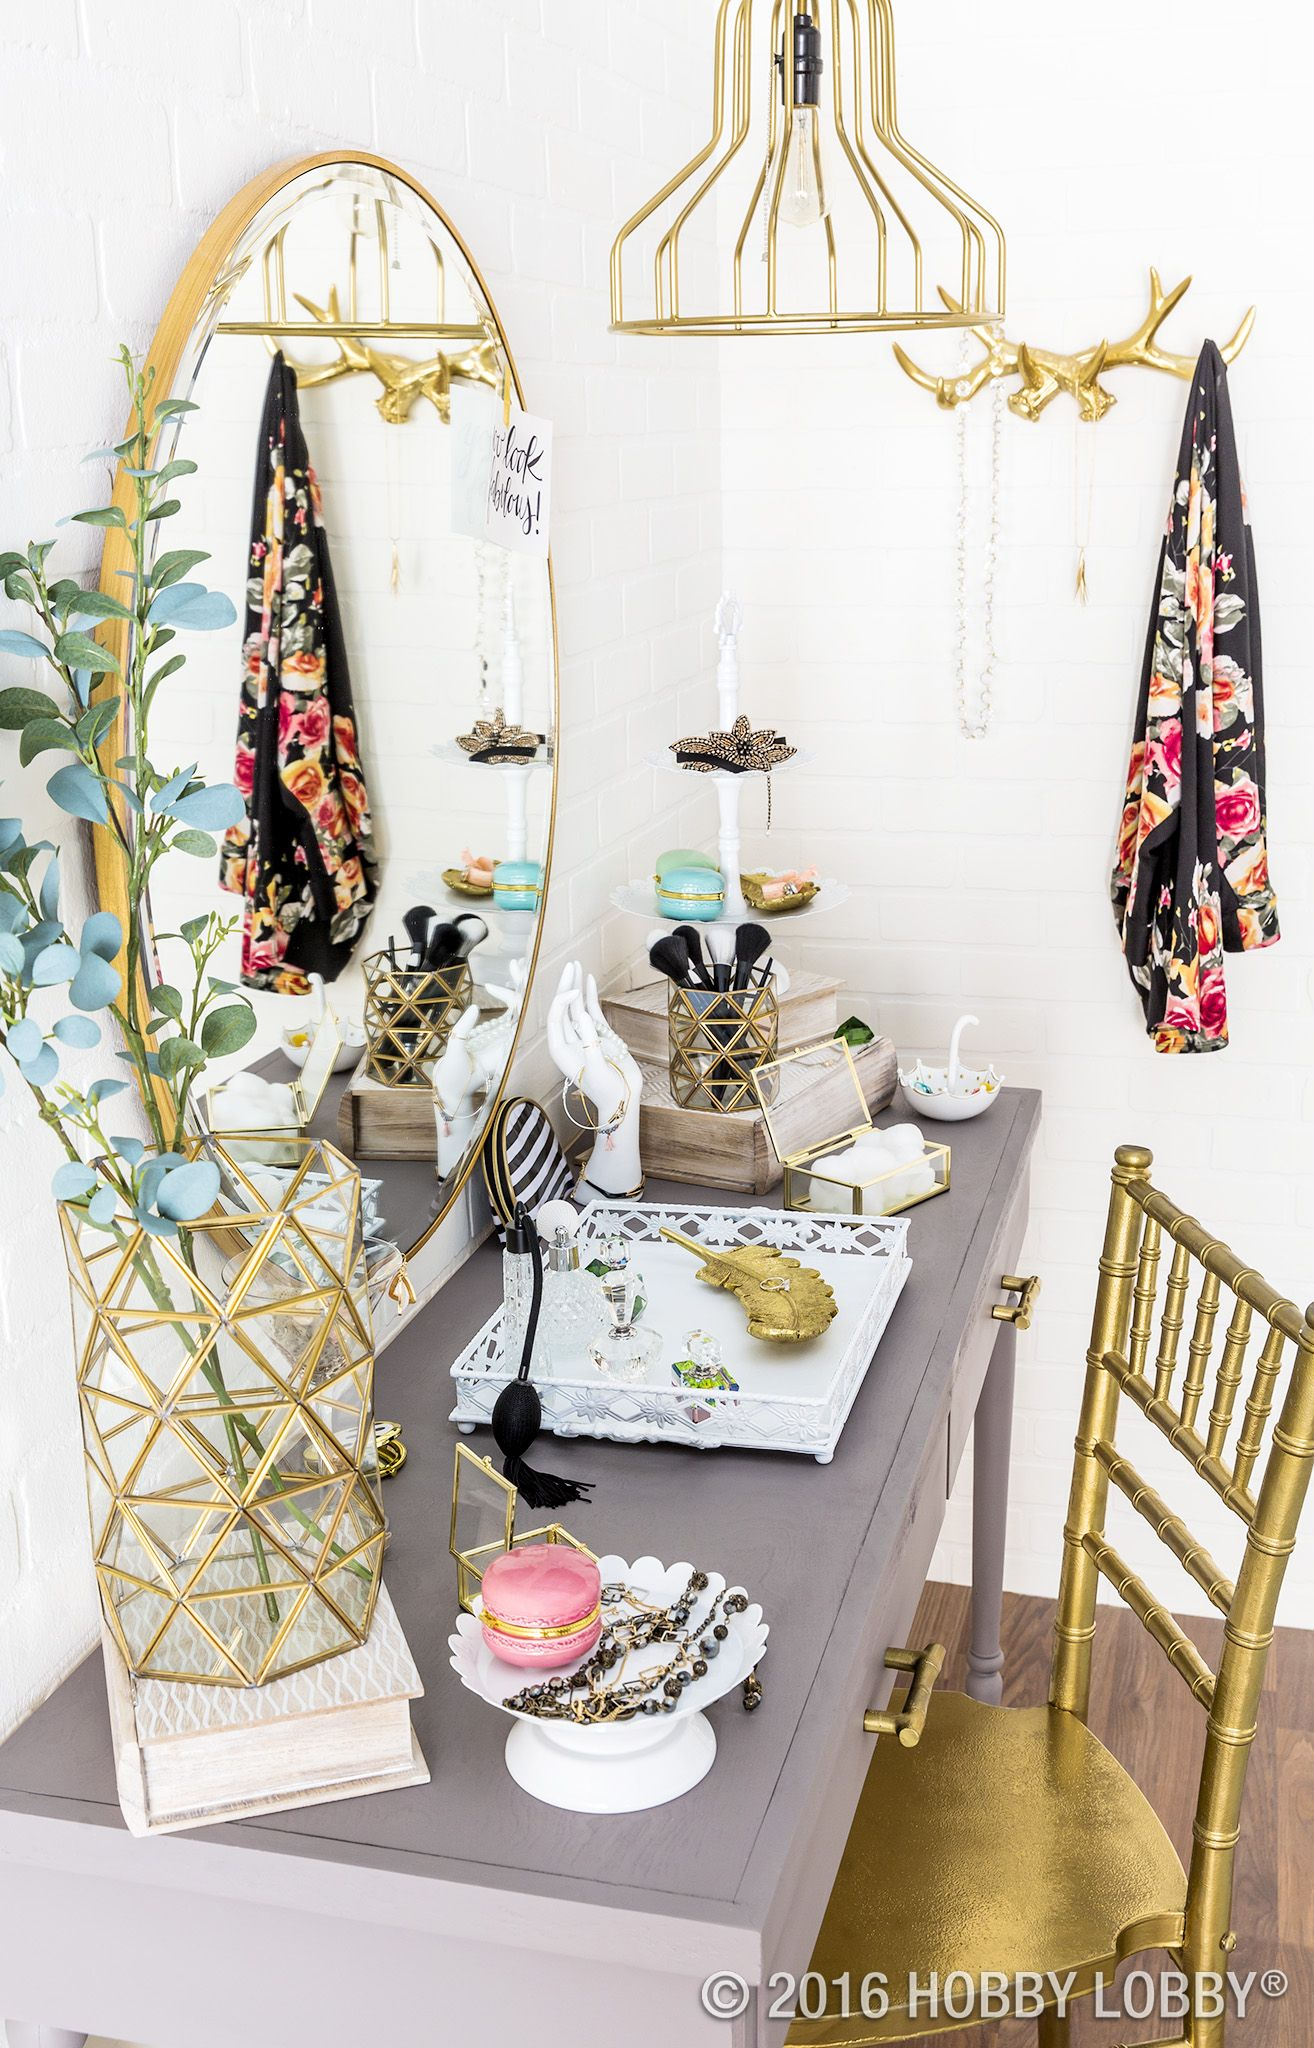 Give your vanity boutiquey vibes with glamorous gold accents